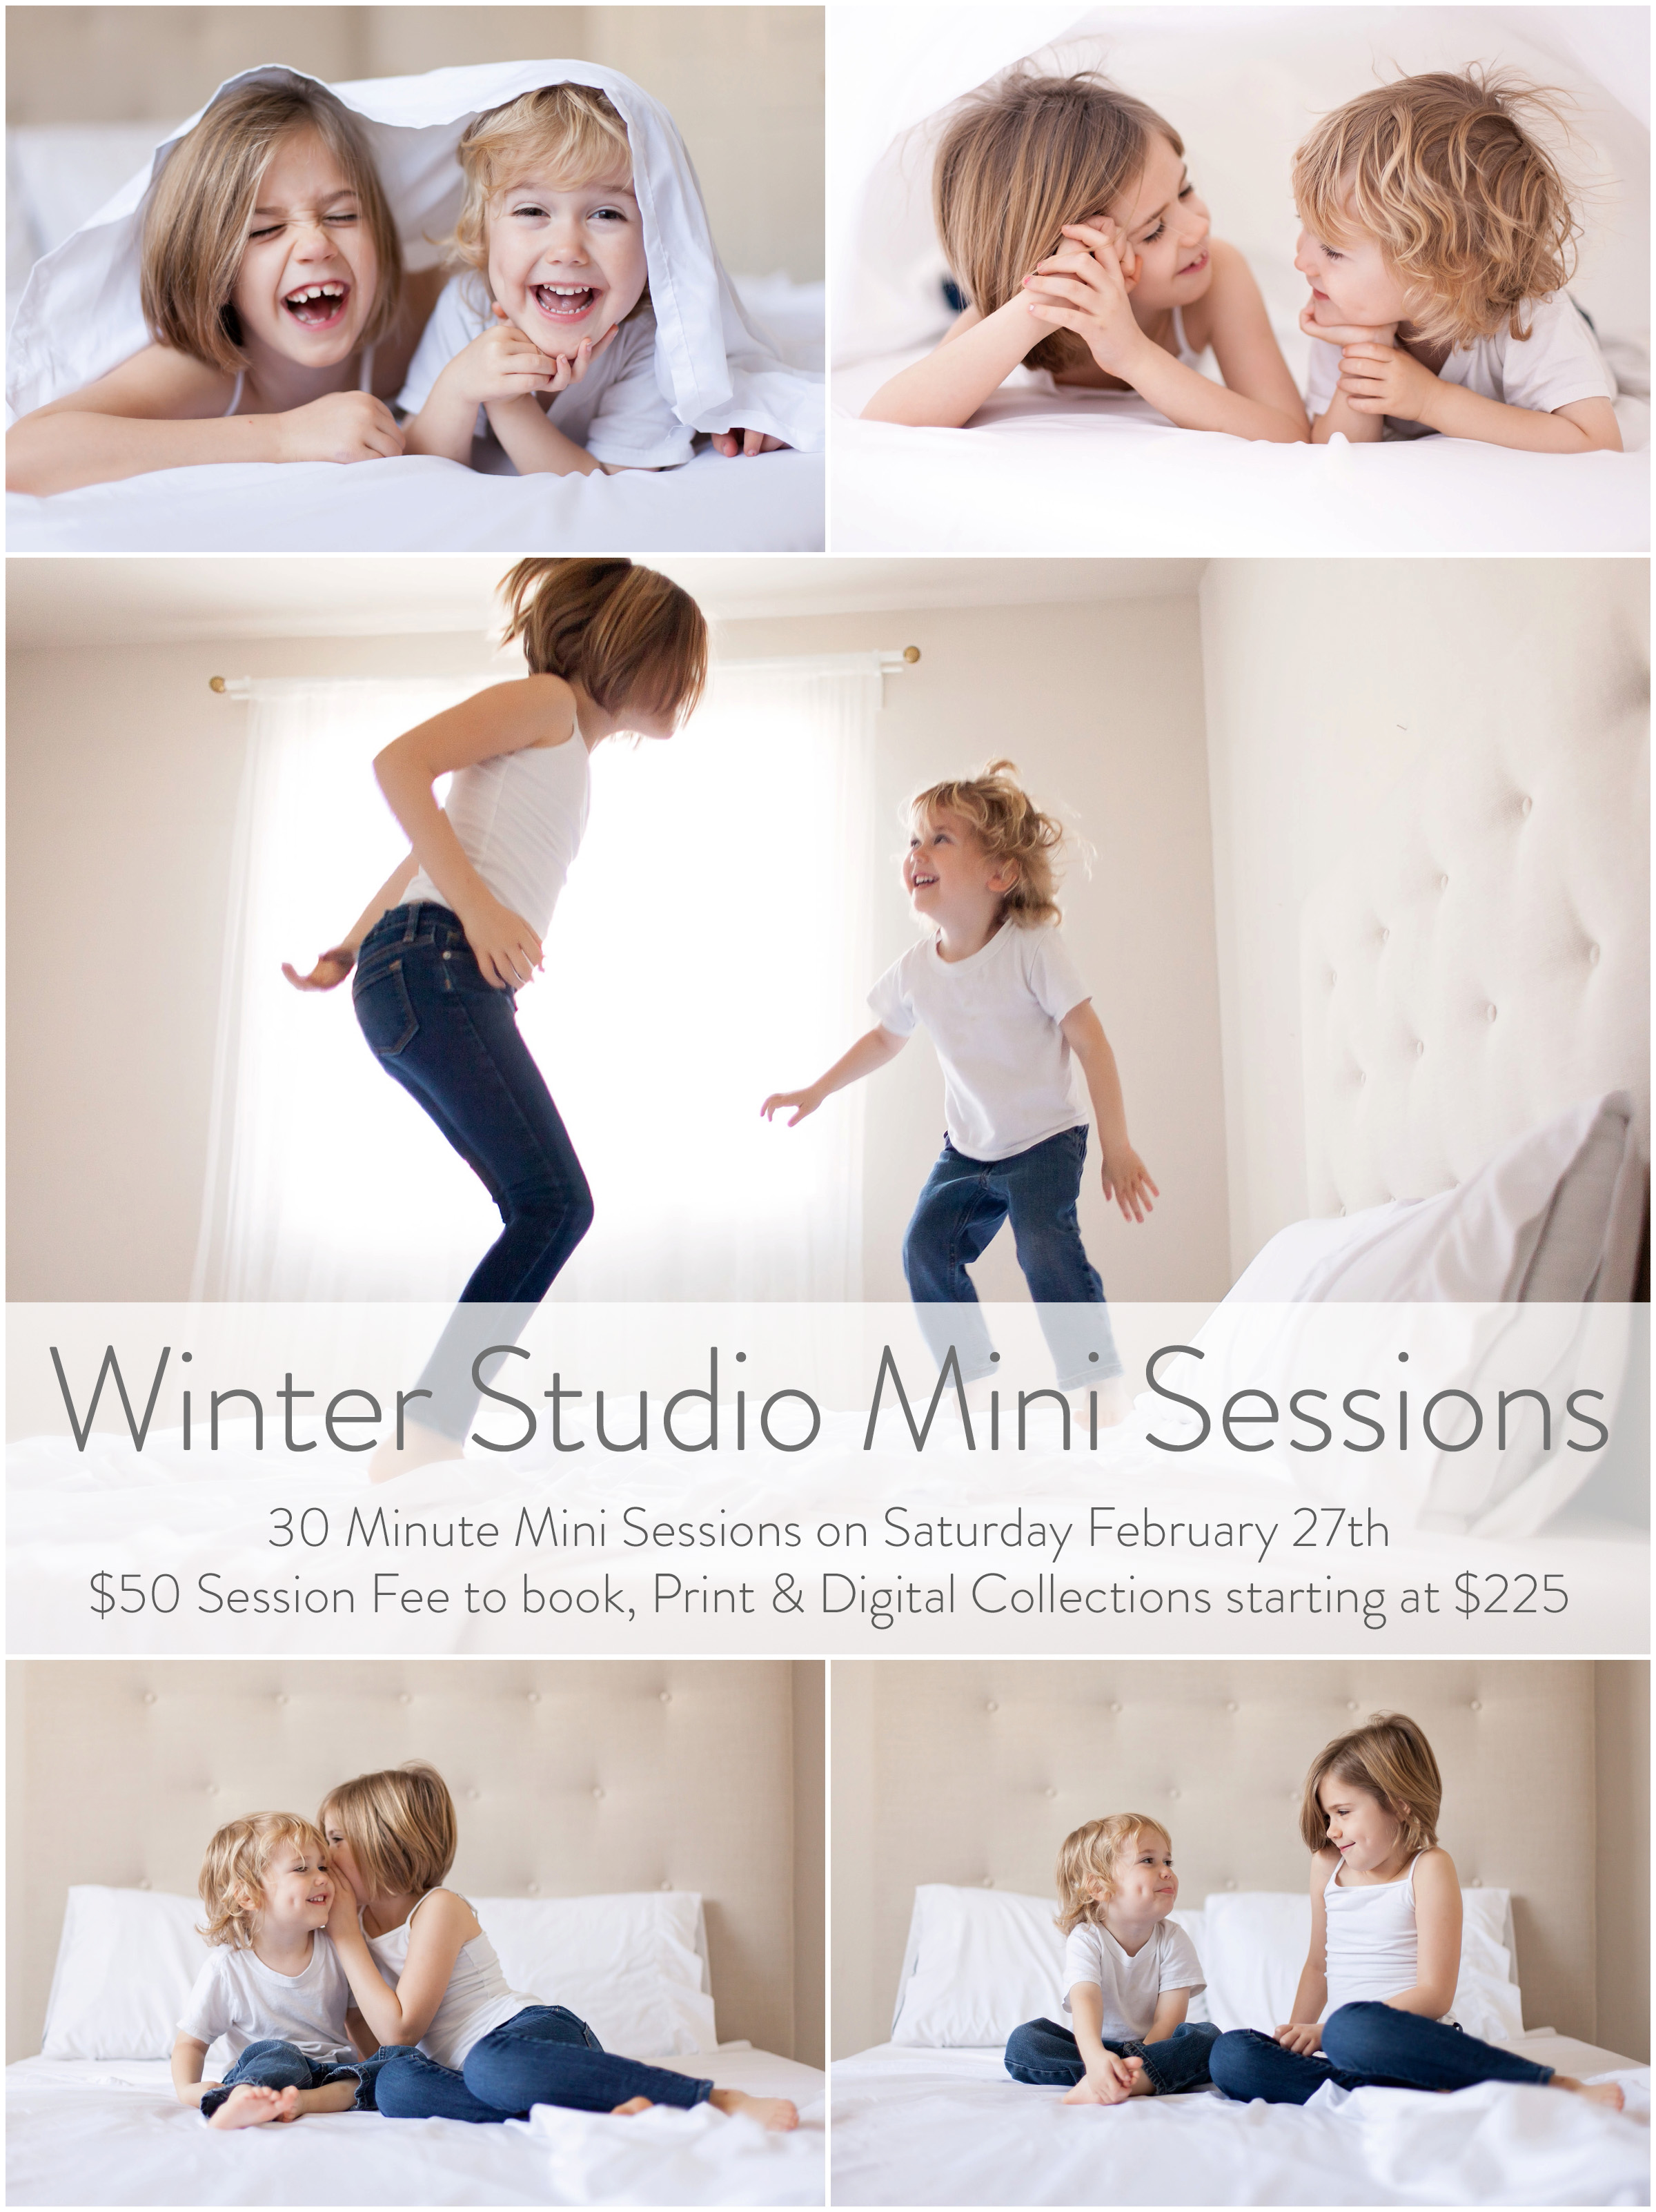 Winter Studio Mini Sessions by Just Maggie Photography - Los Angeles Family Photographer